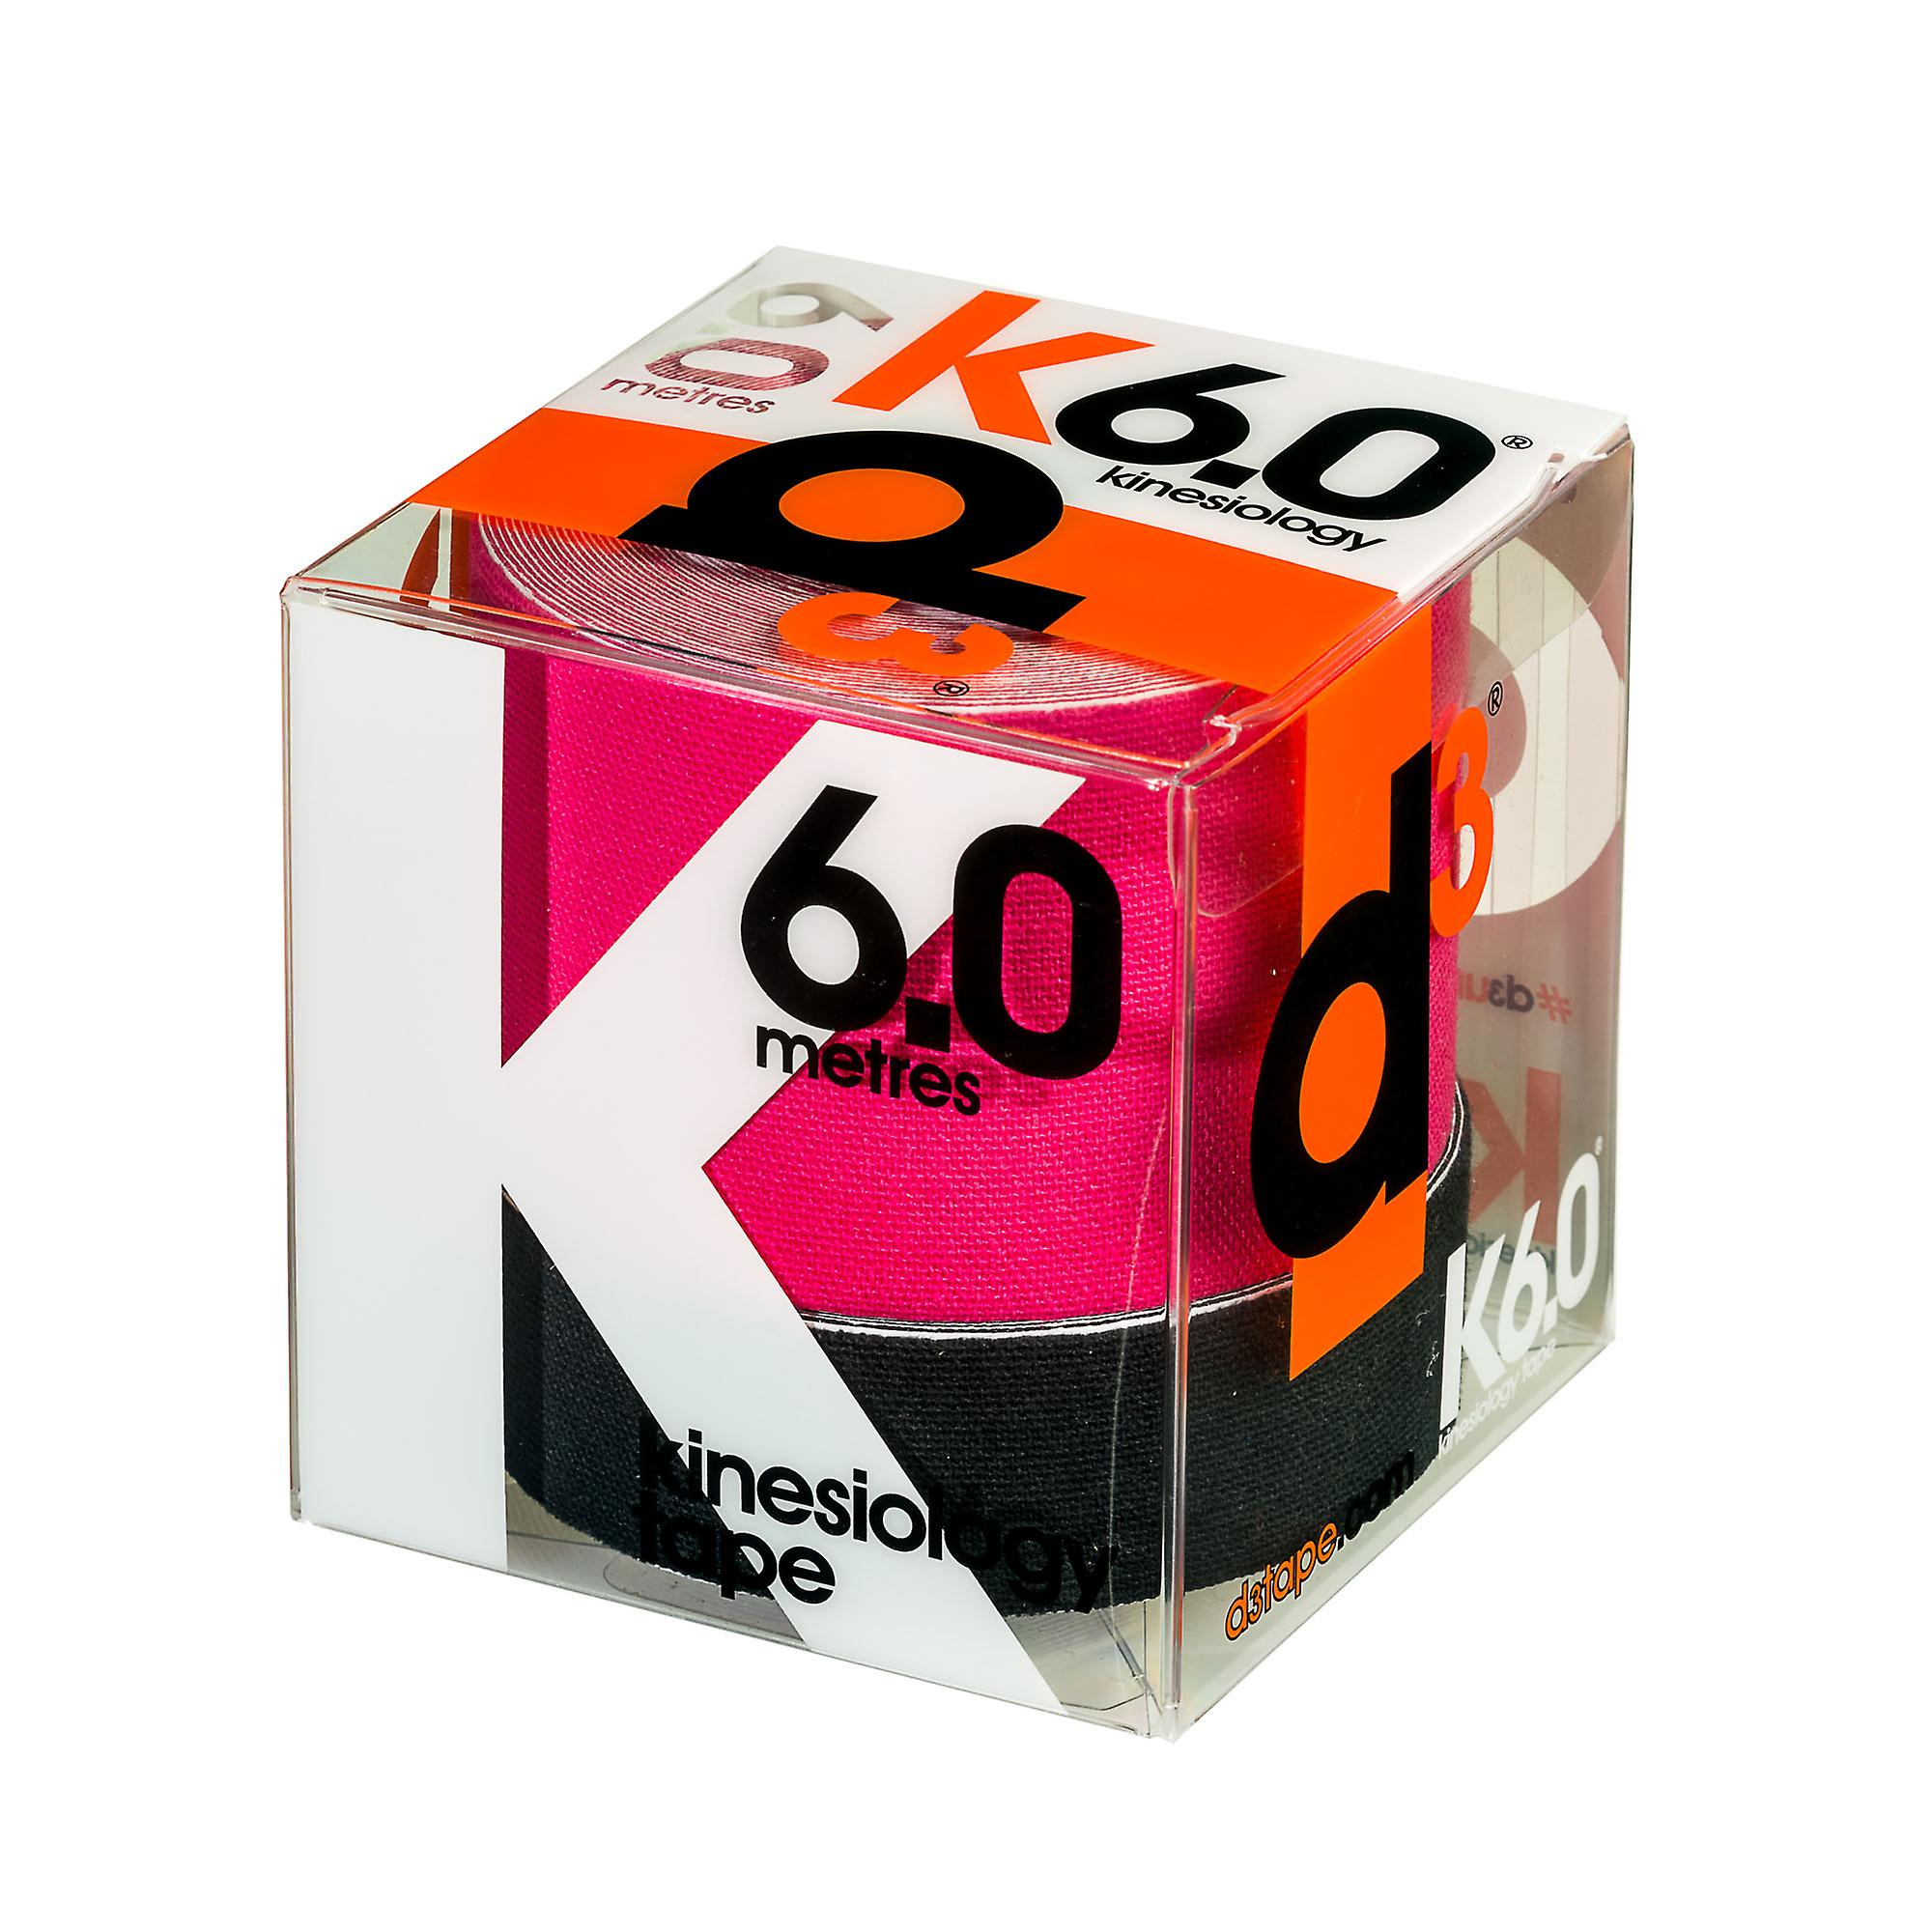 d3 K6.0 Kinetic Kinesiology Sports Fitness Tape 2 Pack 50mm + 25mm x 6m